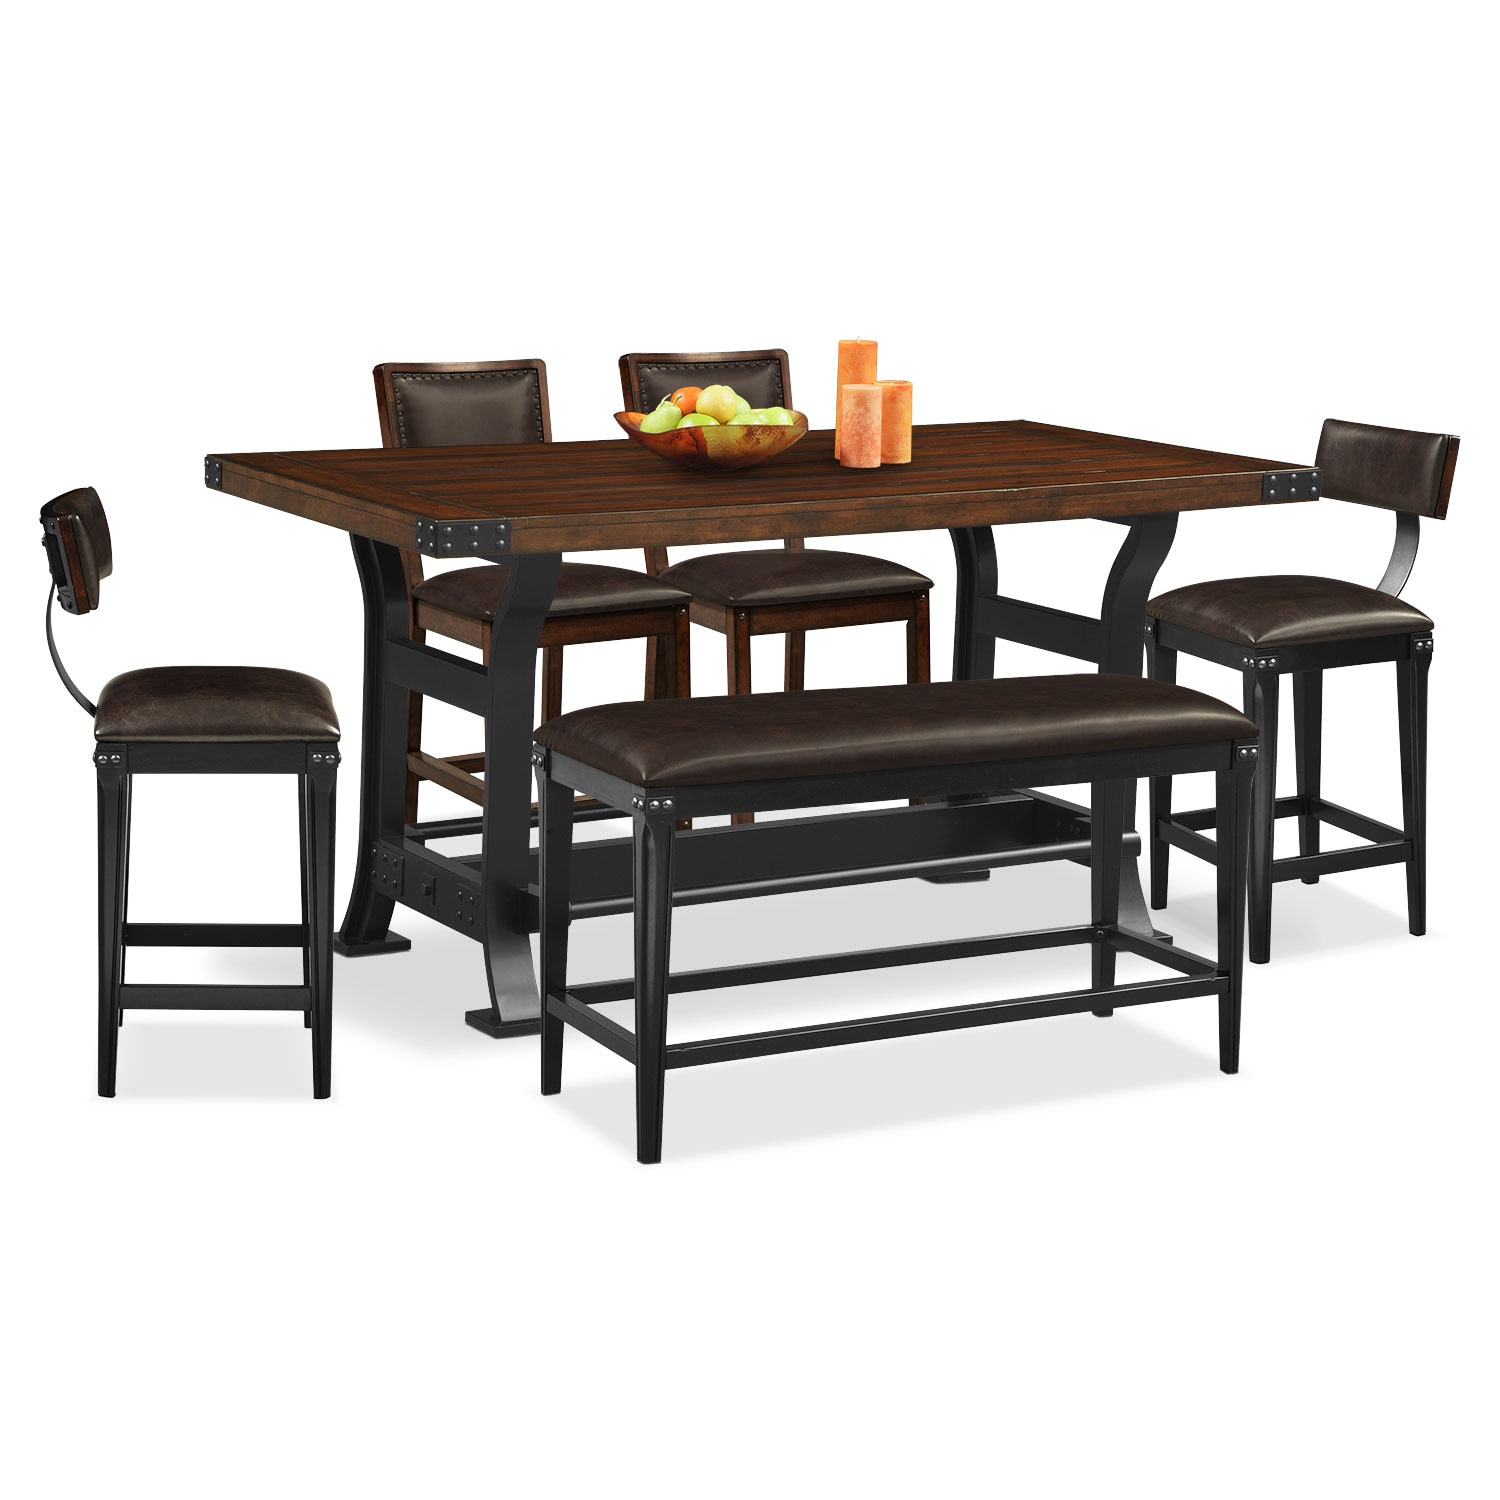 Newcastle counter height table 2 chairs 2 stools and bench mahogany value city furniture - Height dining room table ...